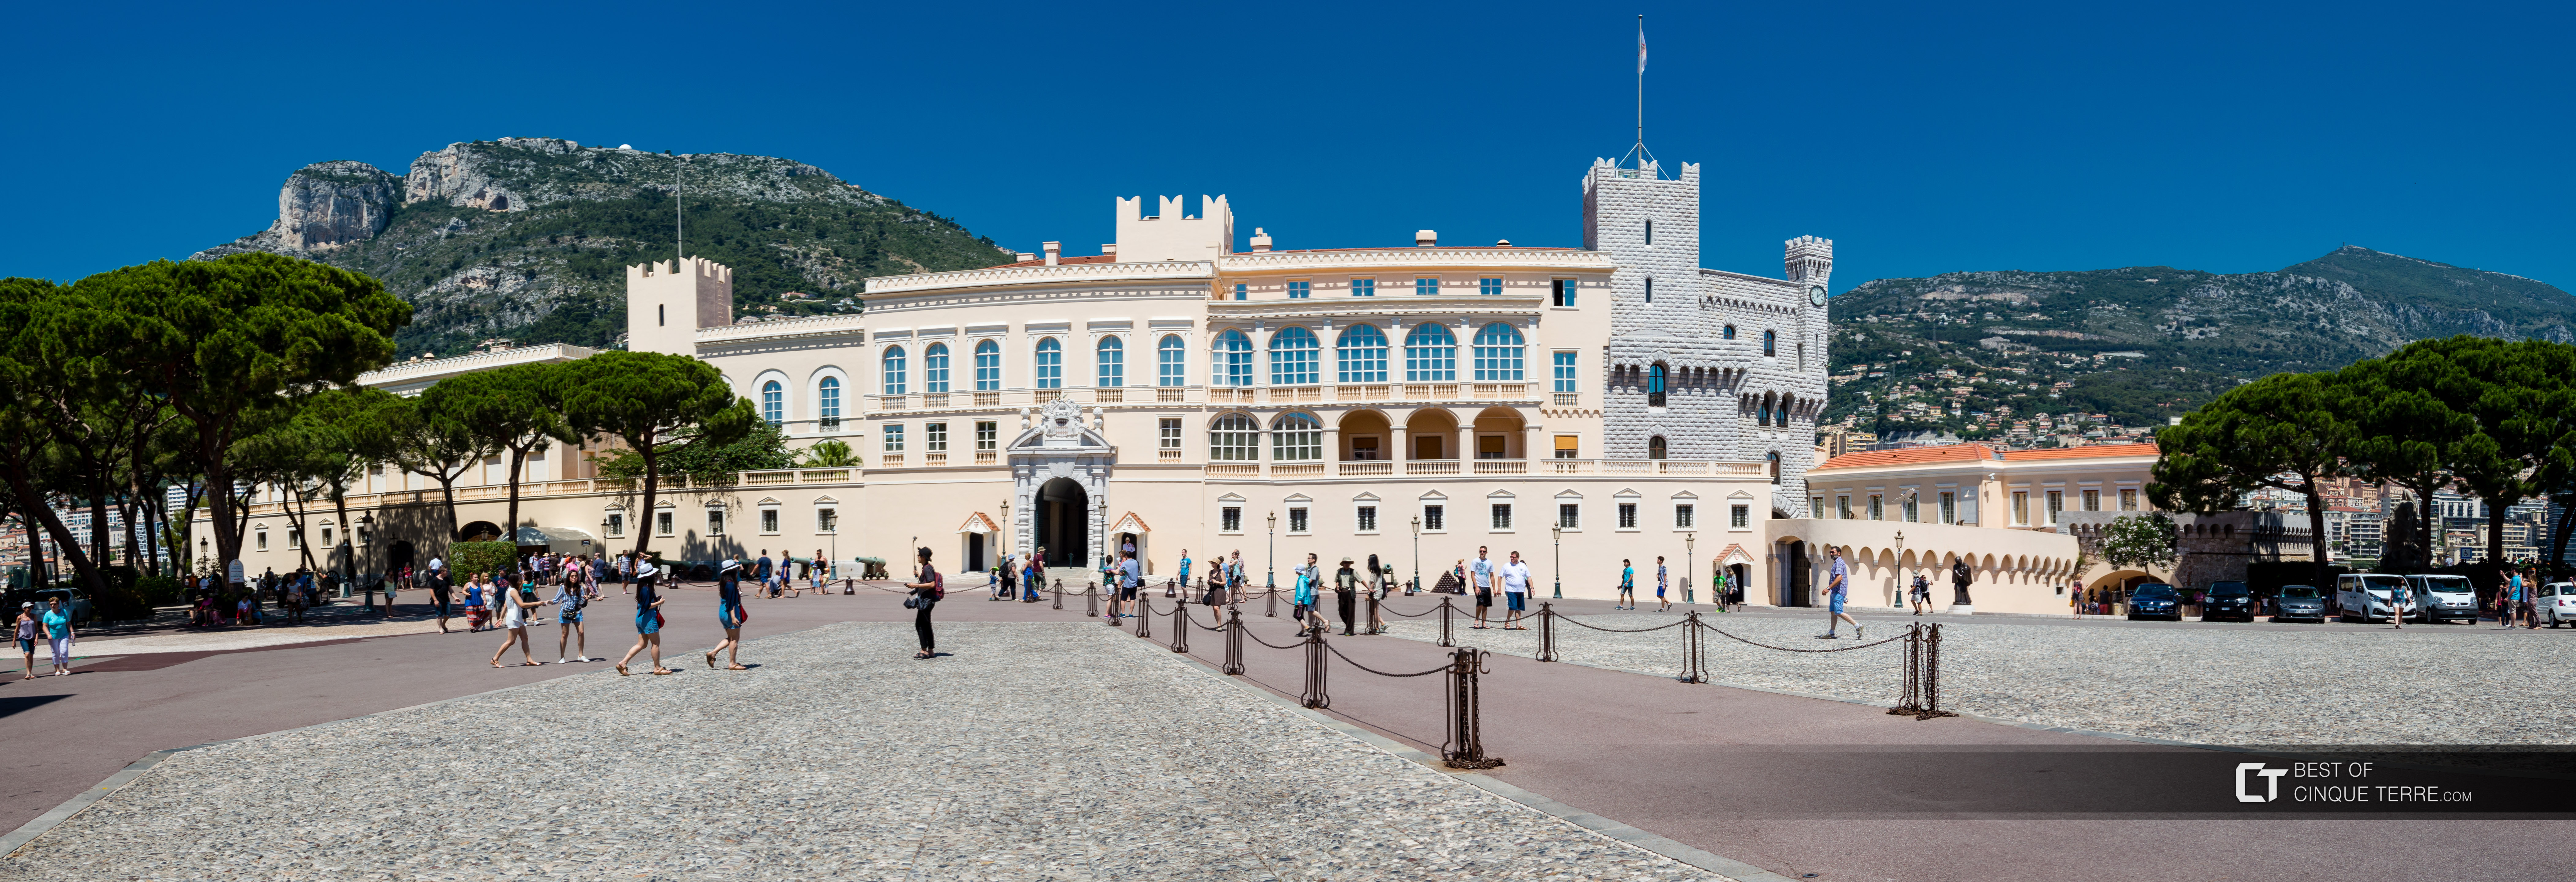 Palace of the Princes of Monaco and the square